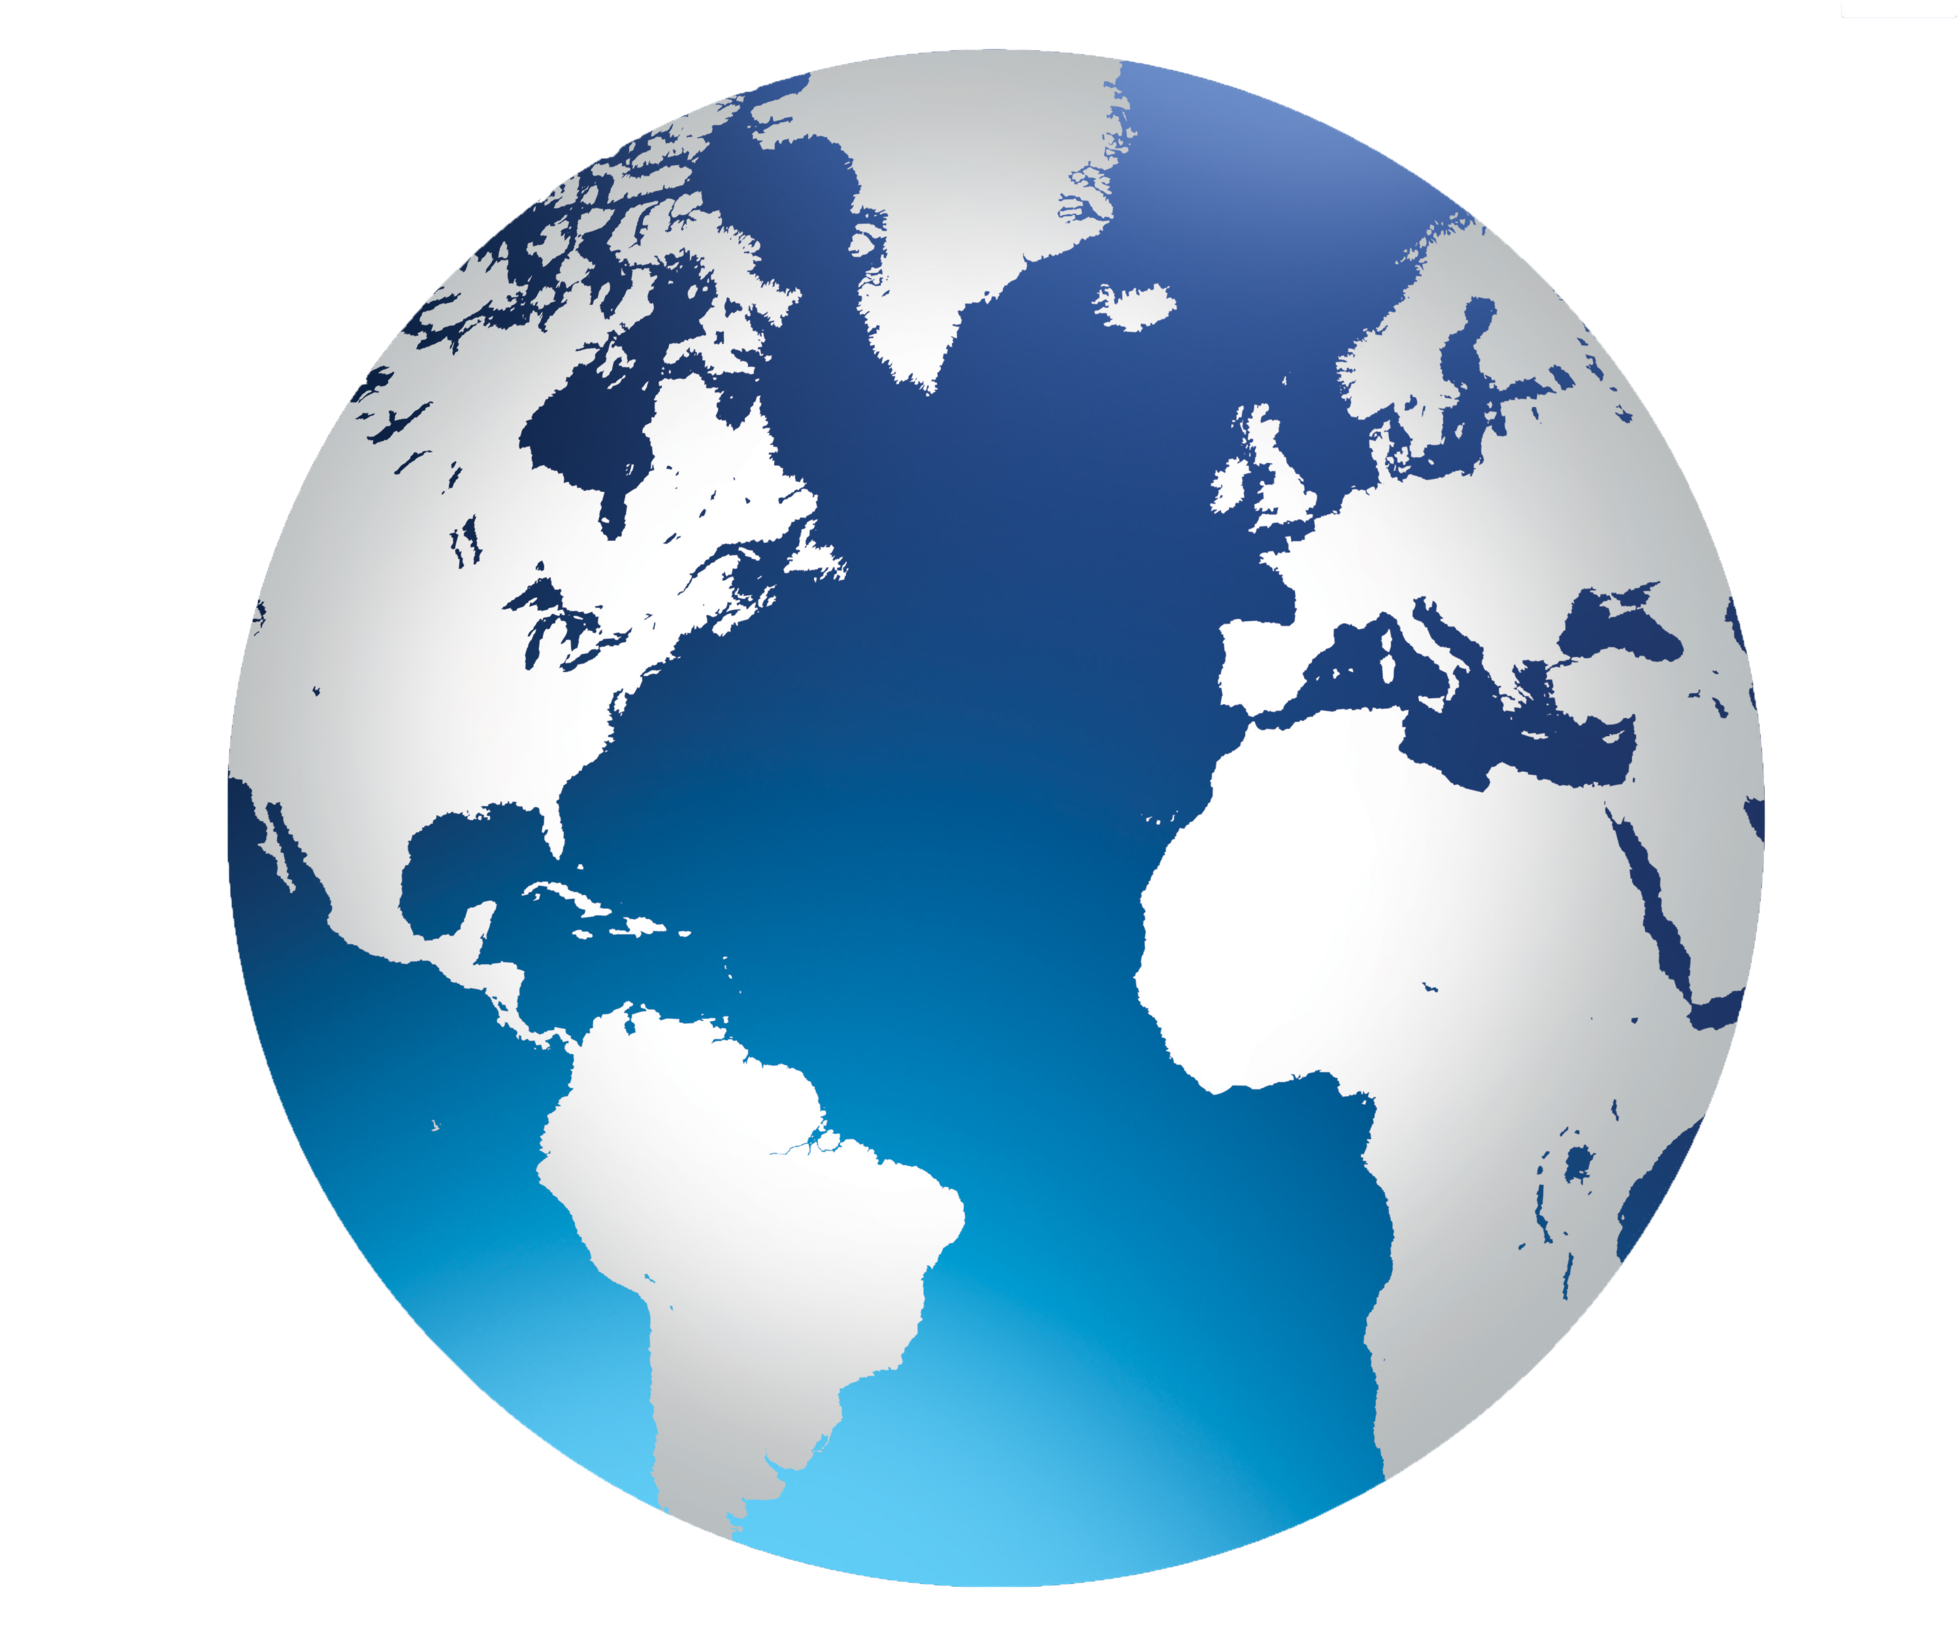 Website clipart globe icon. Png image web icons